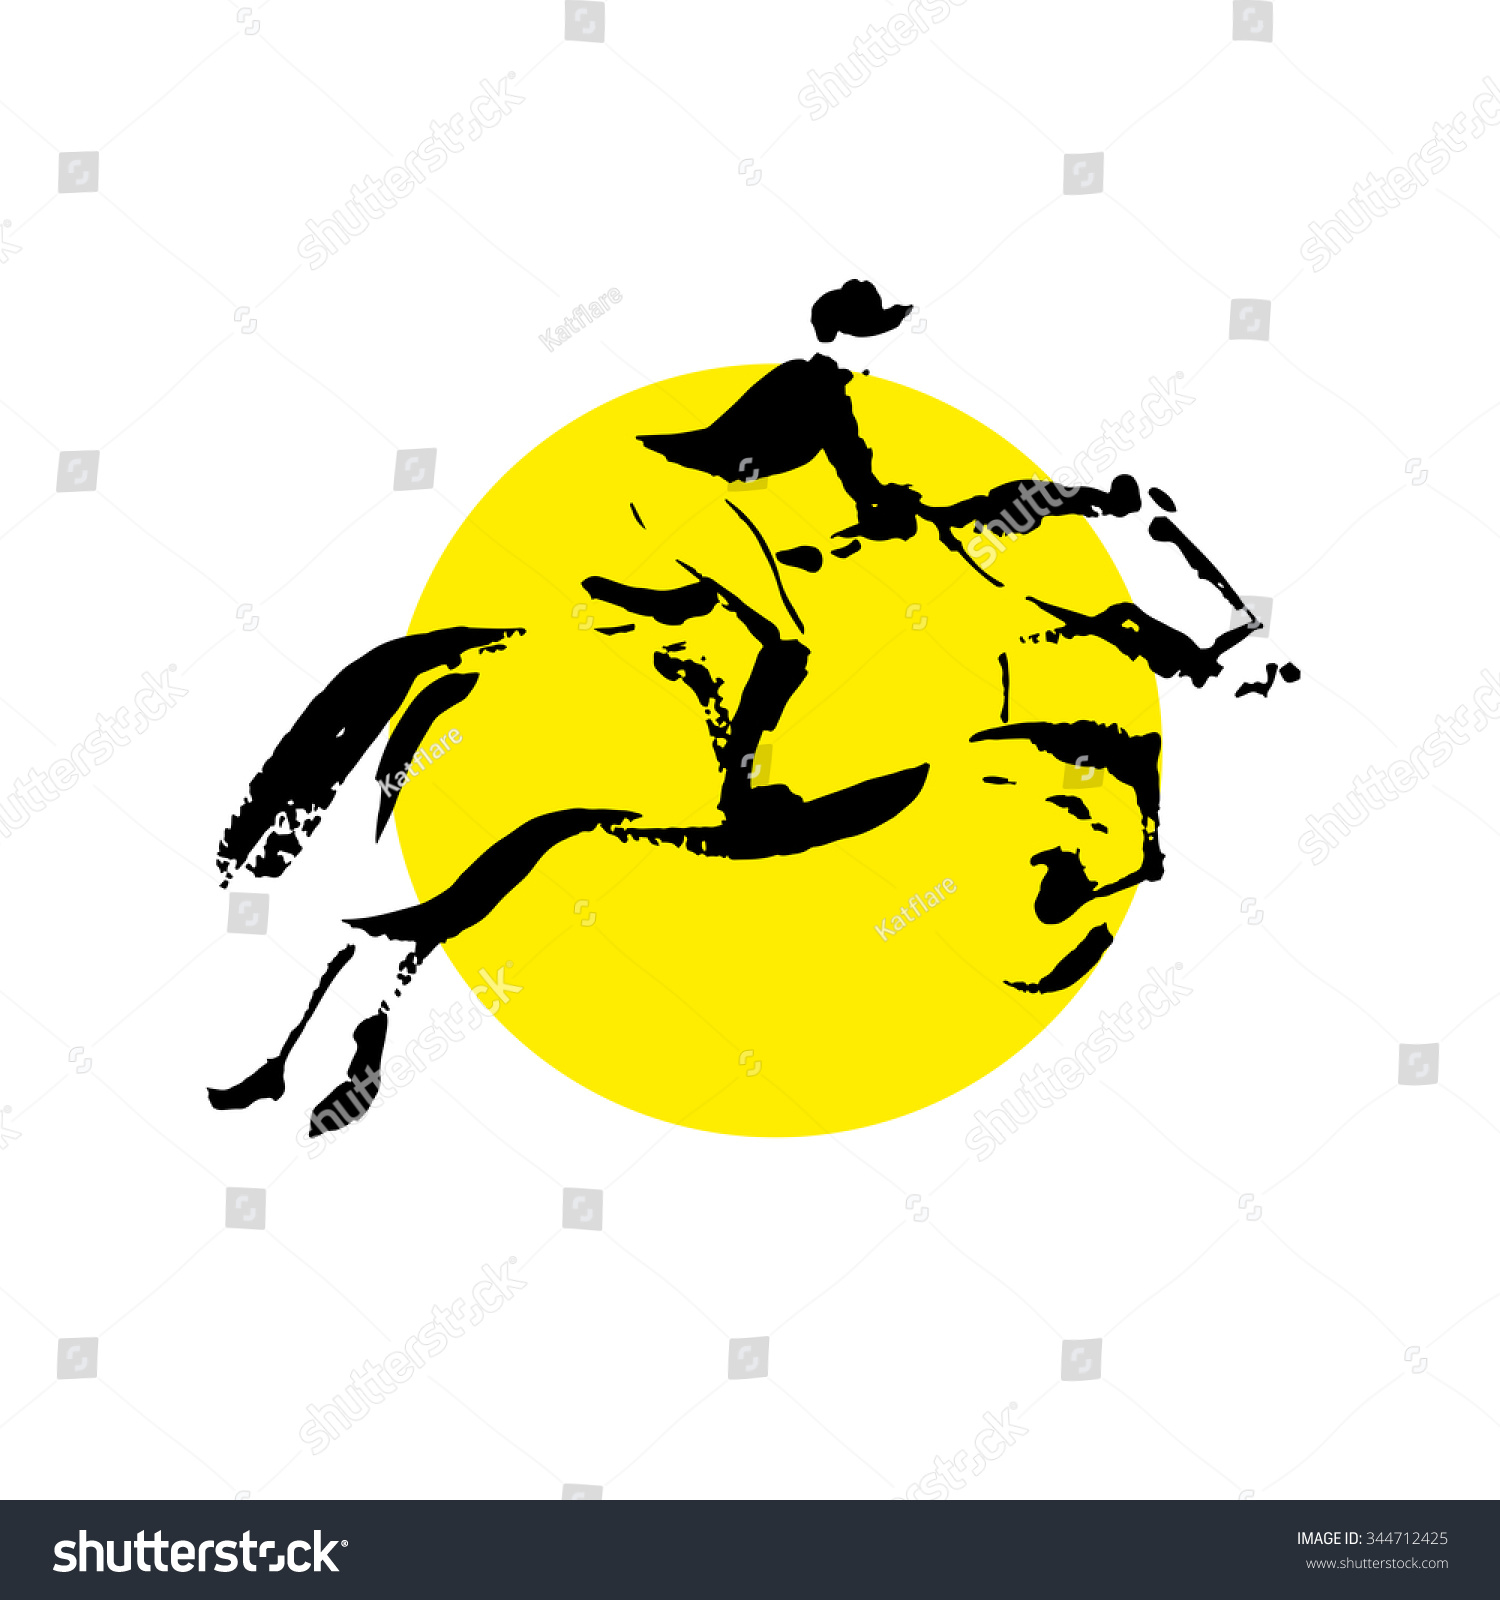 Running Horses Silhouette Wall Border Stock Vector Vector Hand Drawn Horse Riding Sketch